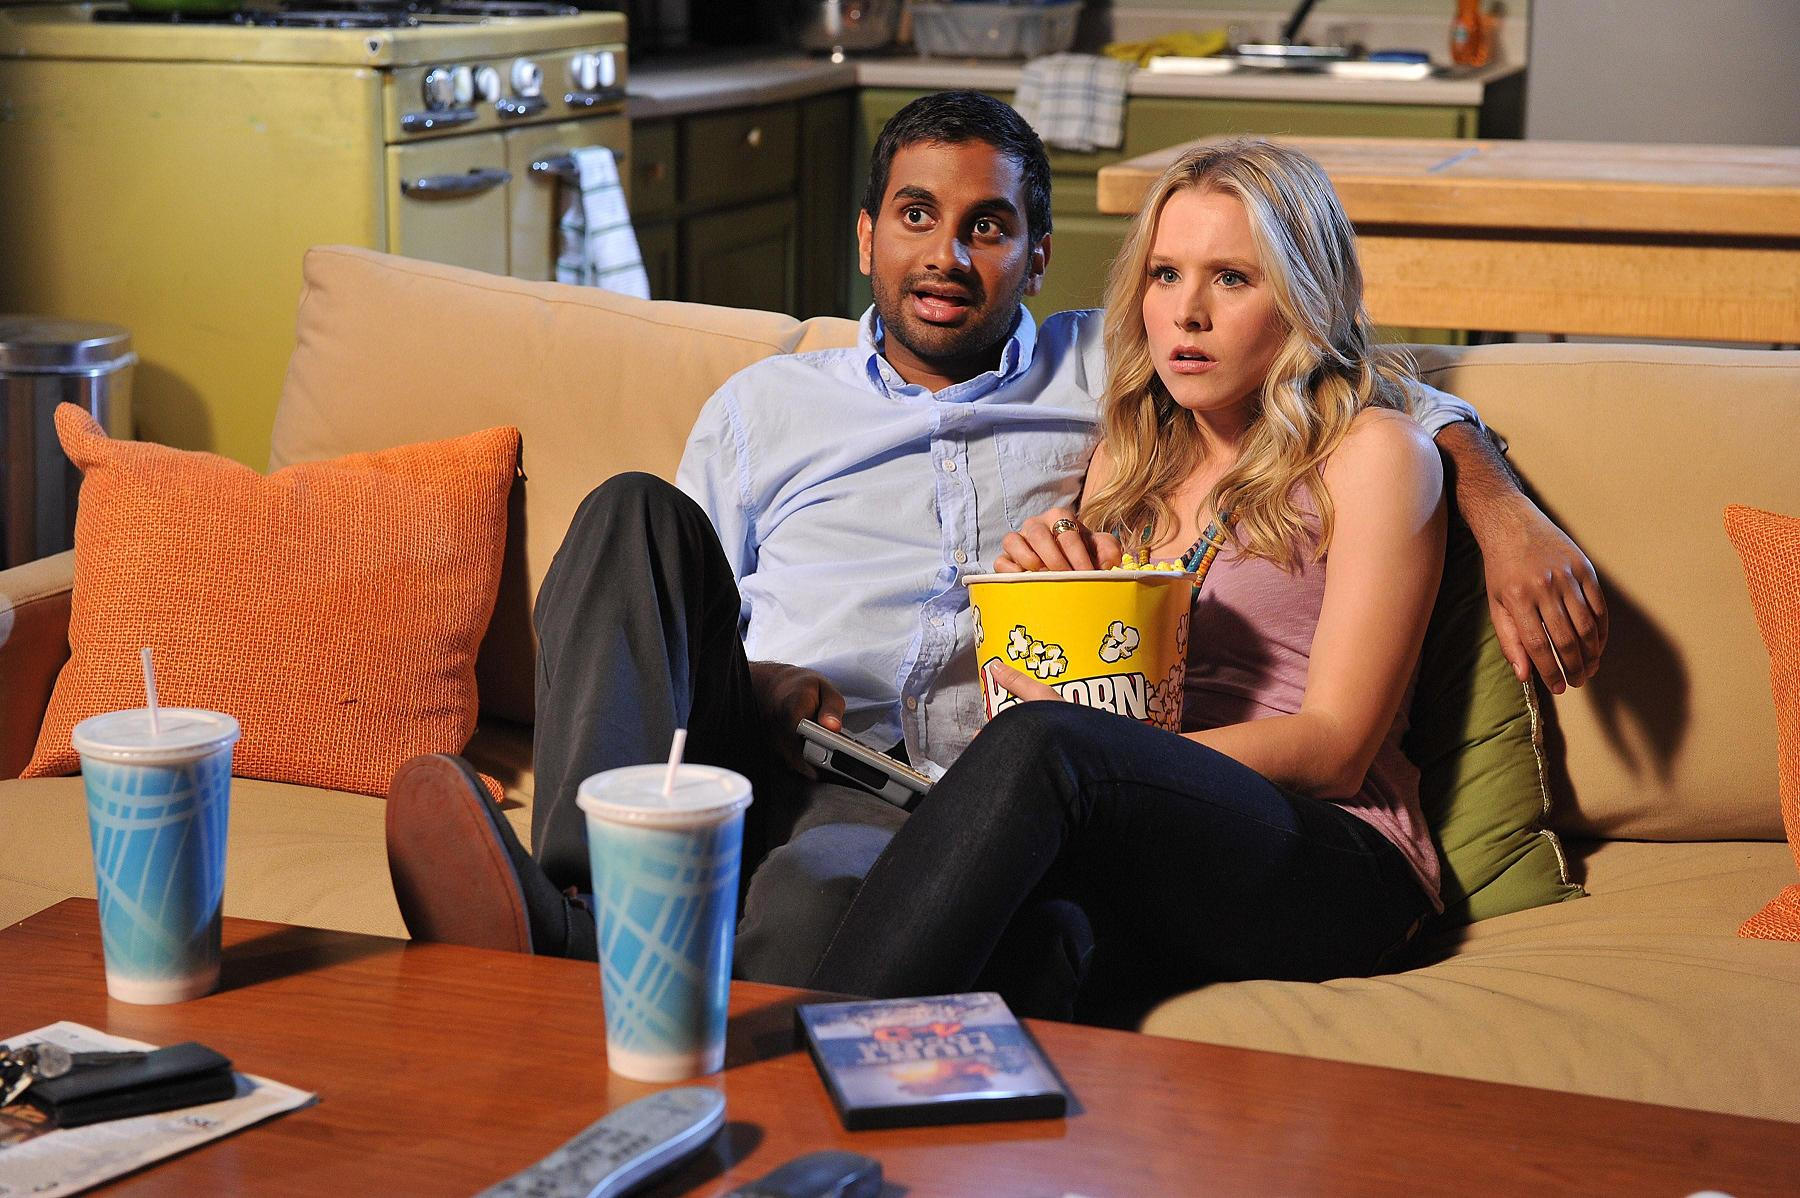 Kristen bell movies and series 2015